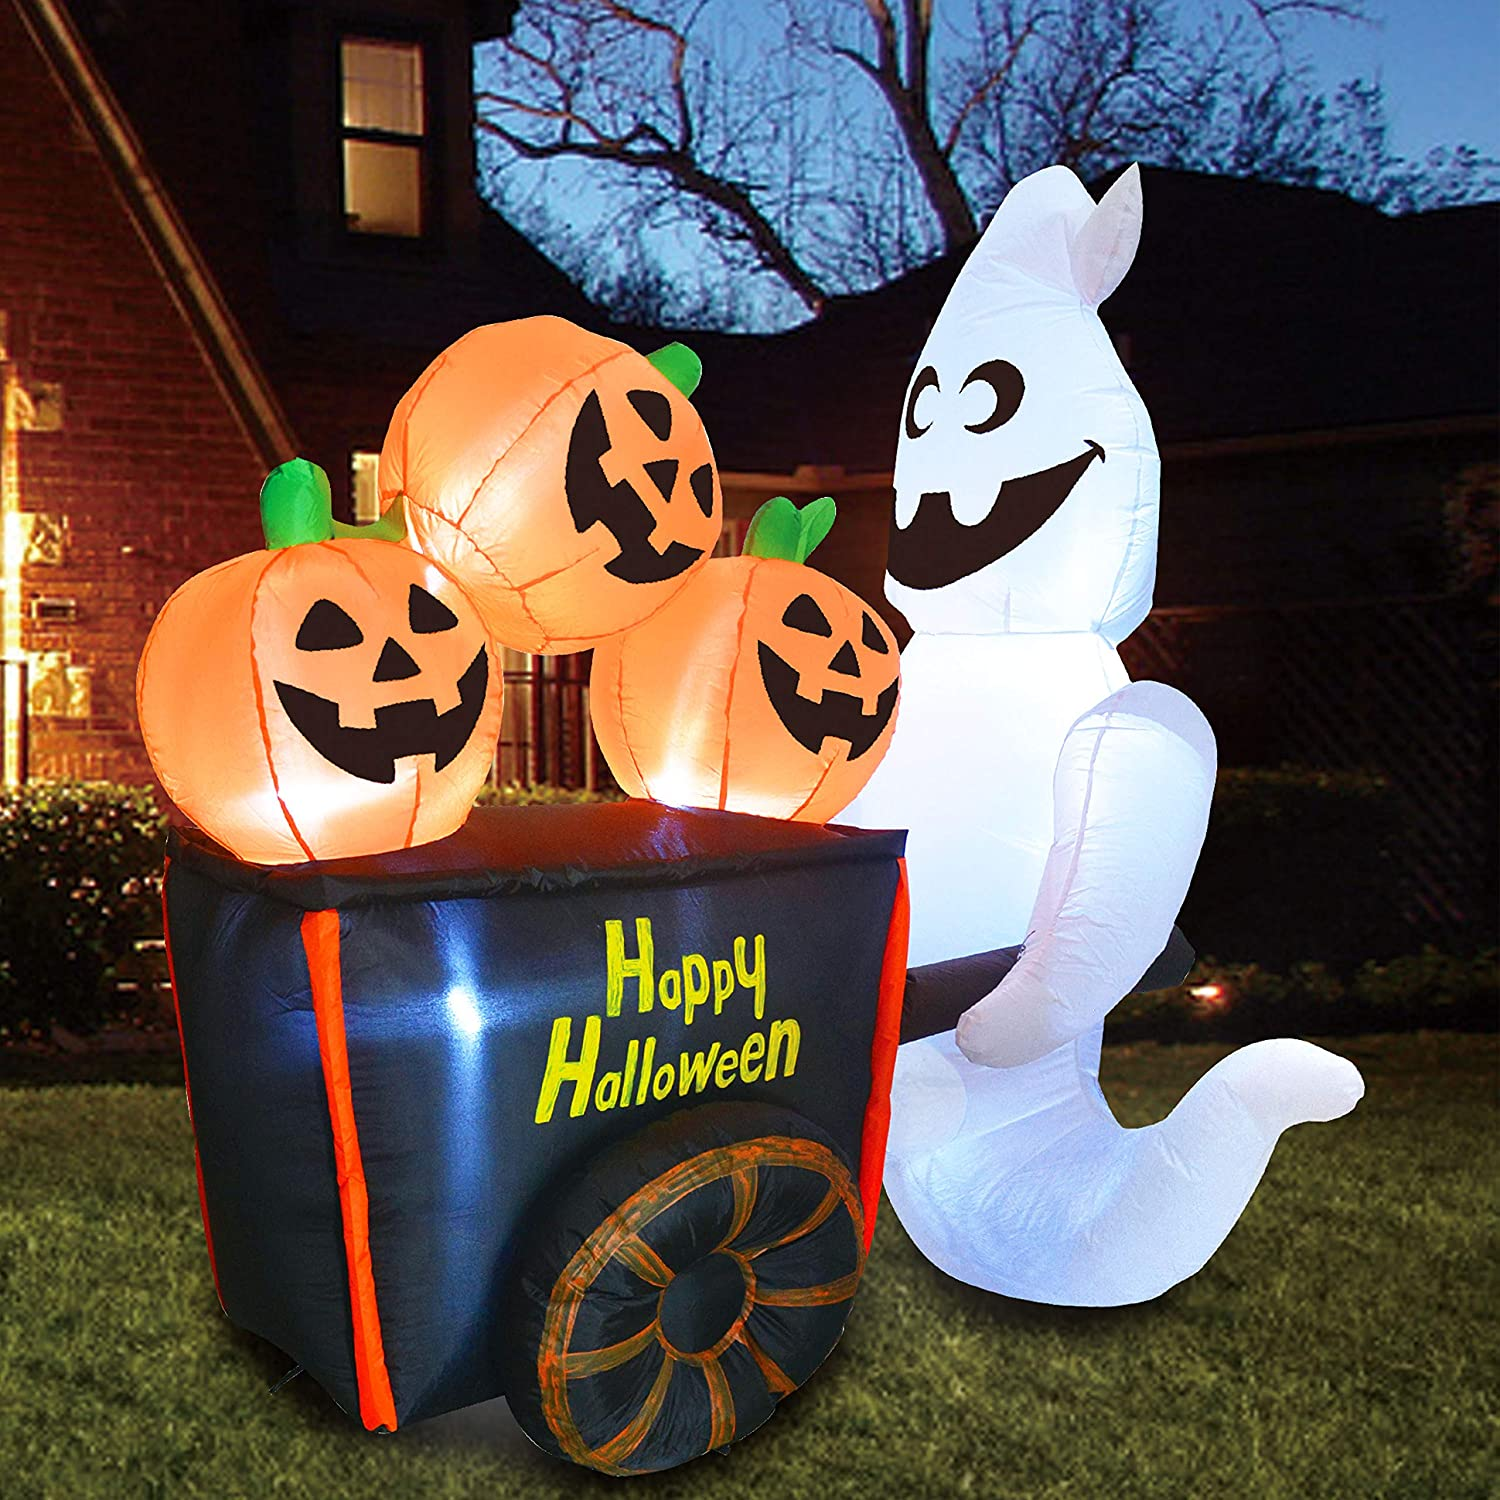 Max 63% OFF Joiedomi Halloween 6 FT Inflatable Cart Pumpkin wi Pushing Ghost Max 44% OFF